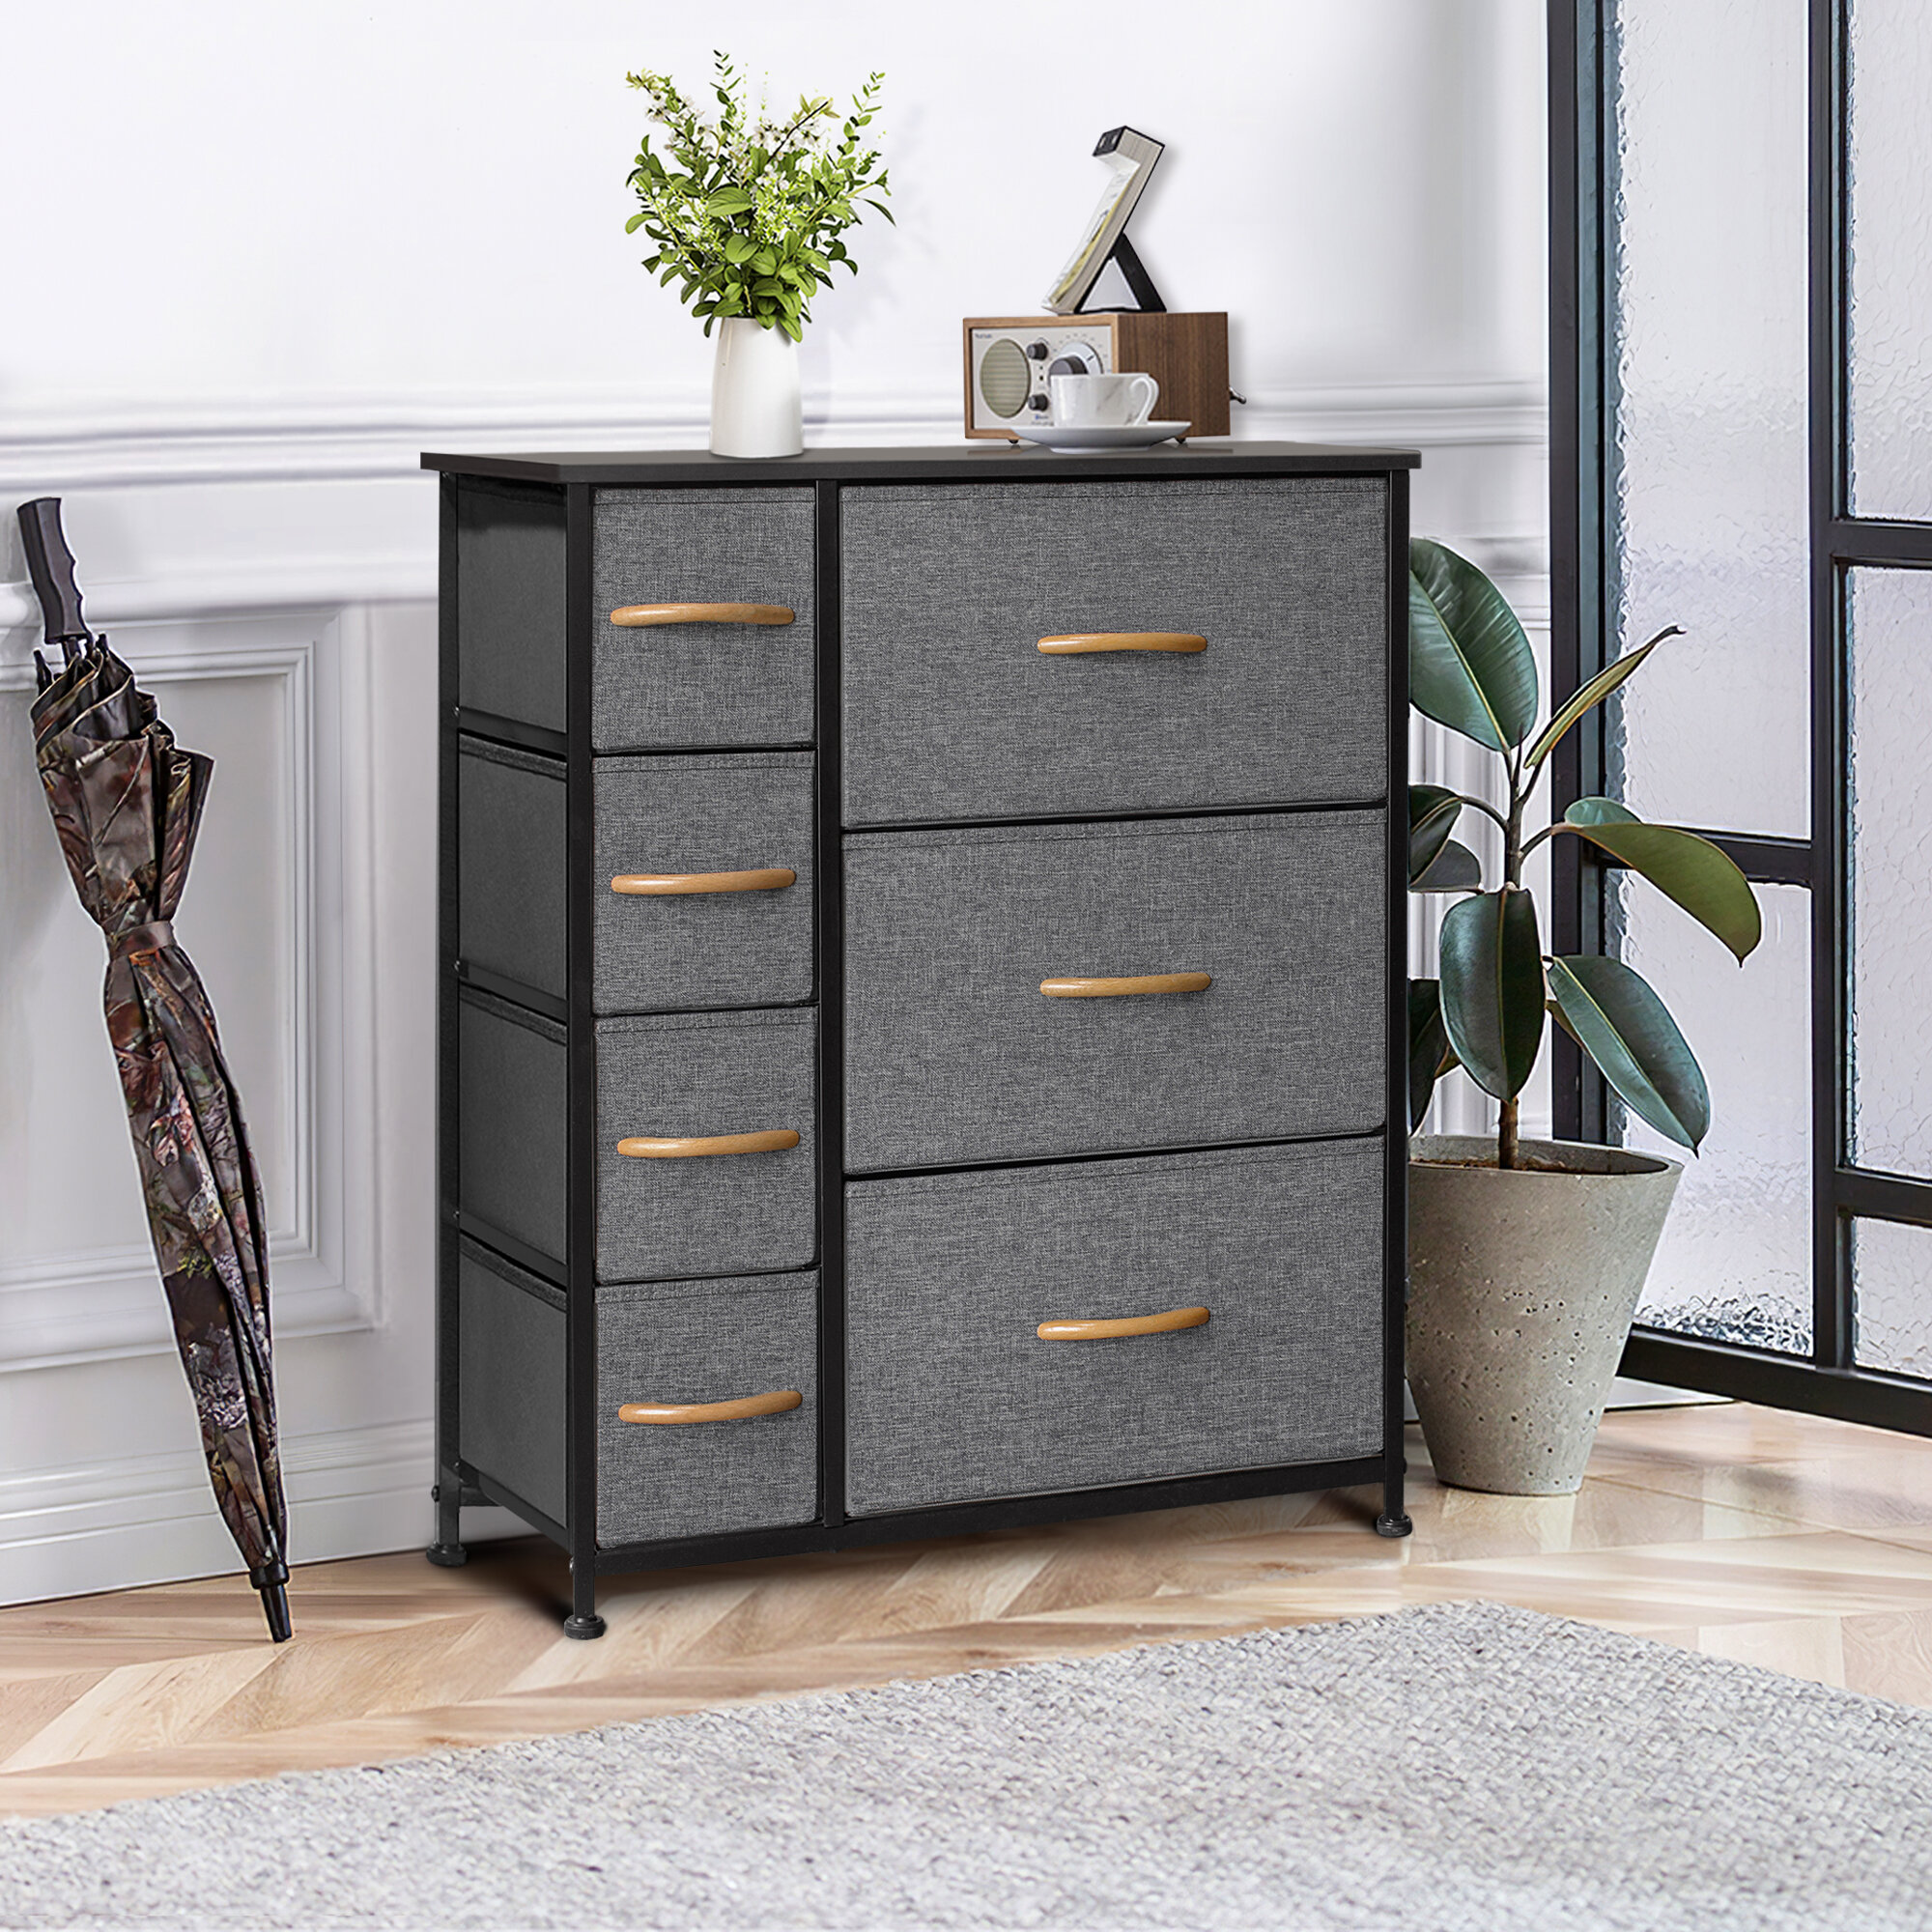 7 Drawers Fabric Bedside Cabinets Table Metal Storage Organiser Chest of Drawers